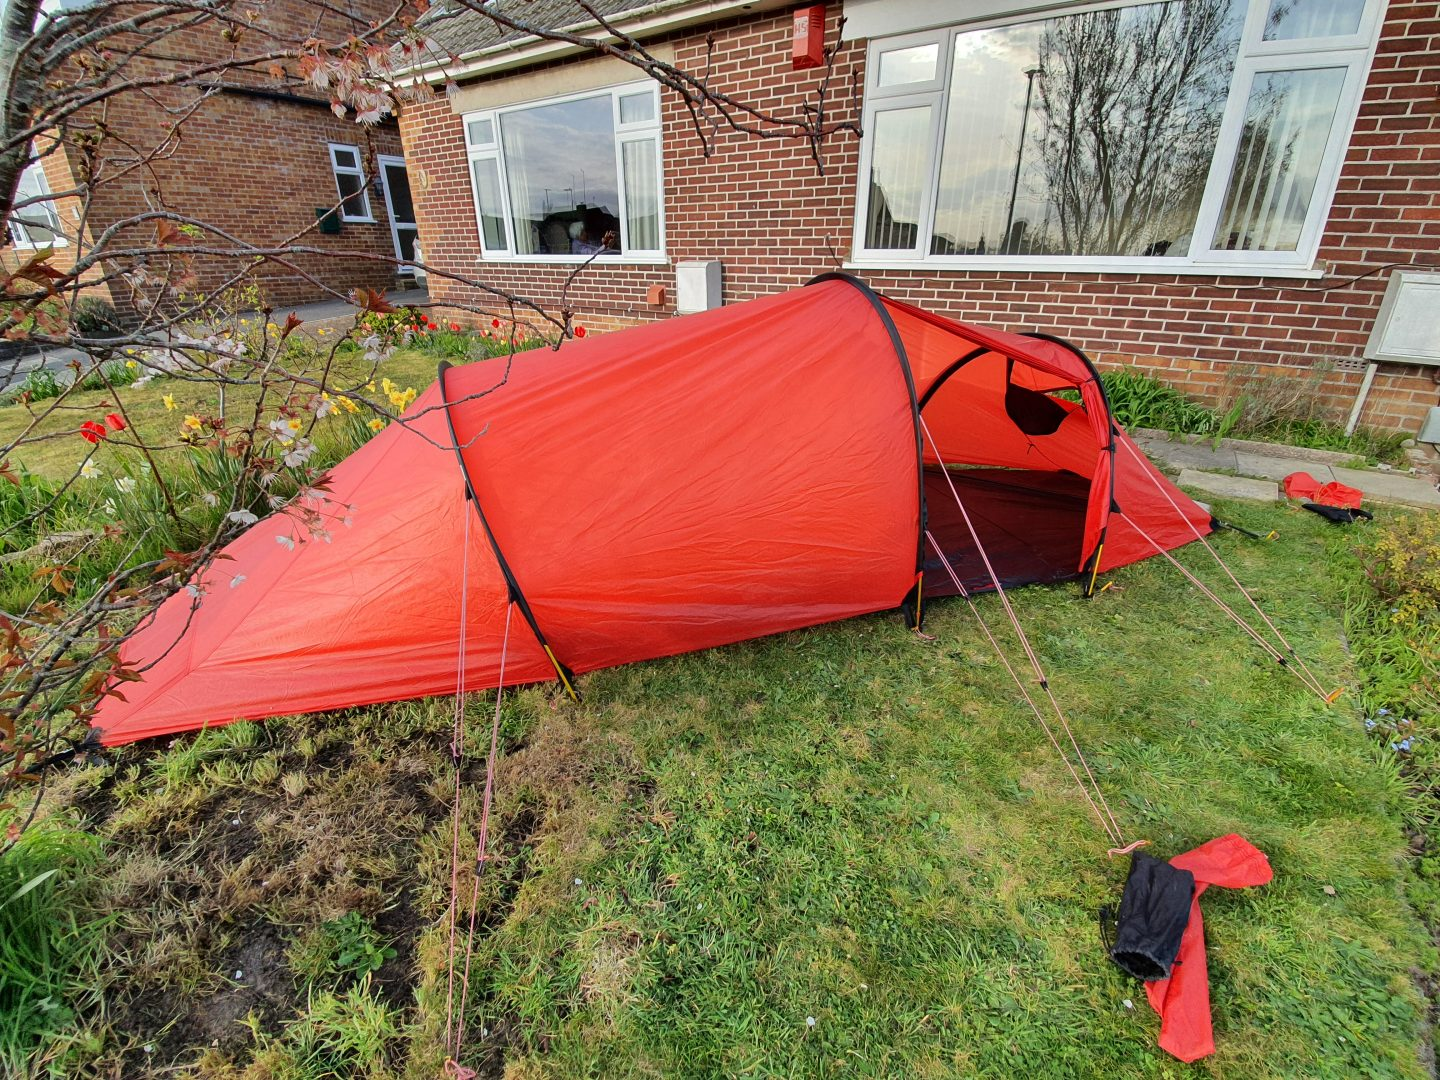 A red expedition tent pitched in front of a house